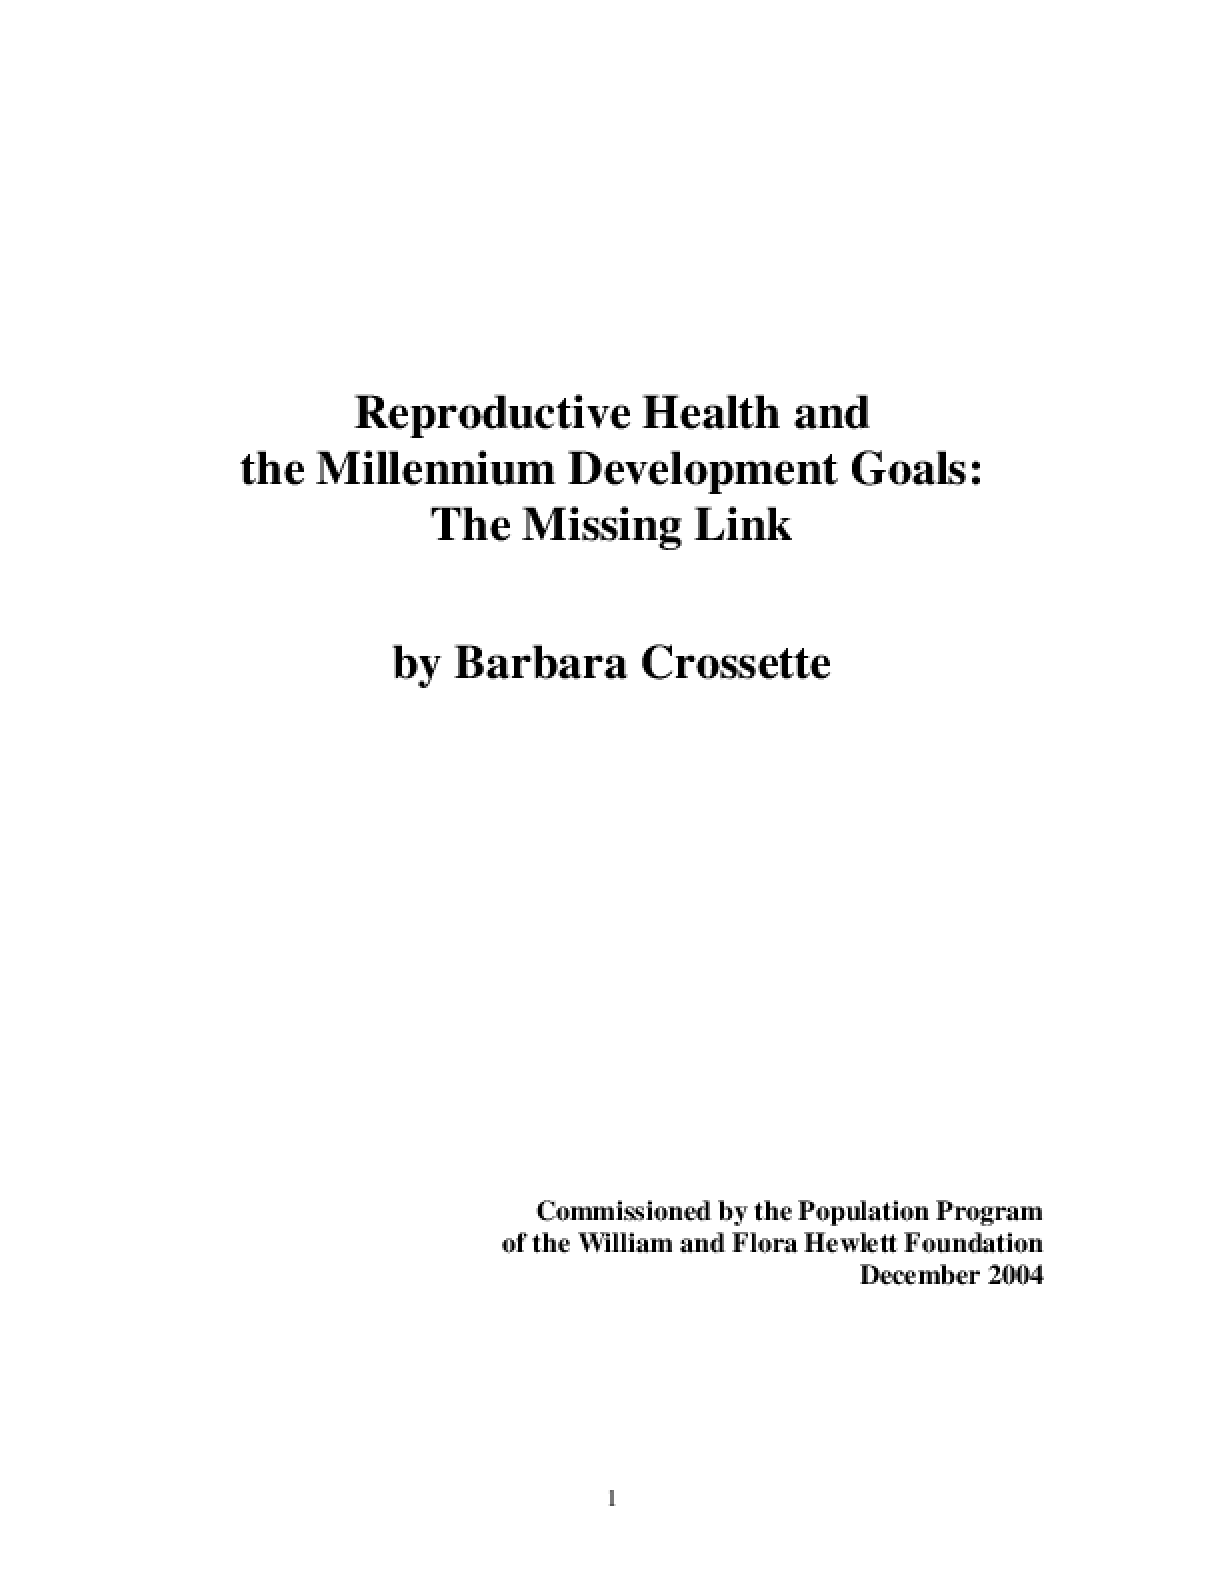 Reproductive Health and the Millennium Development Goals I: The Missing Link